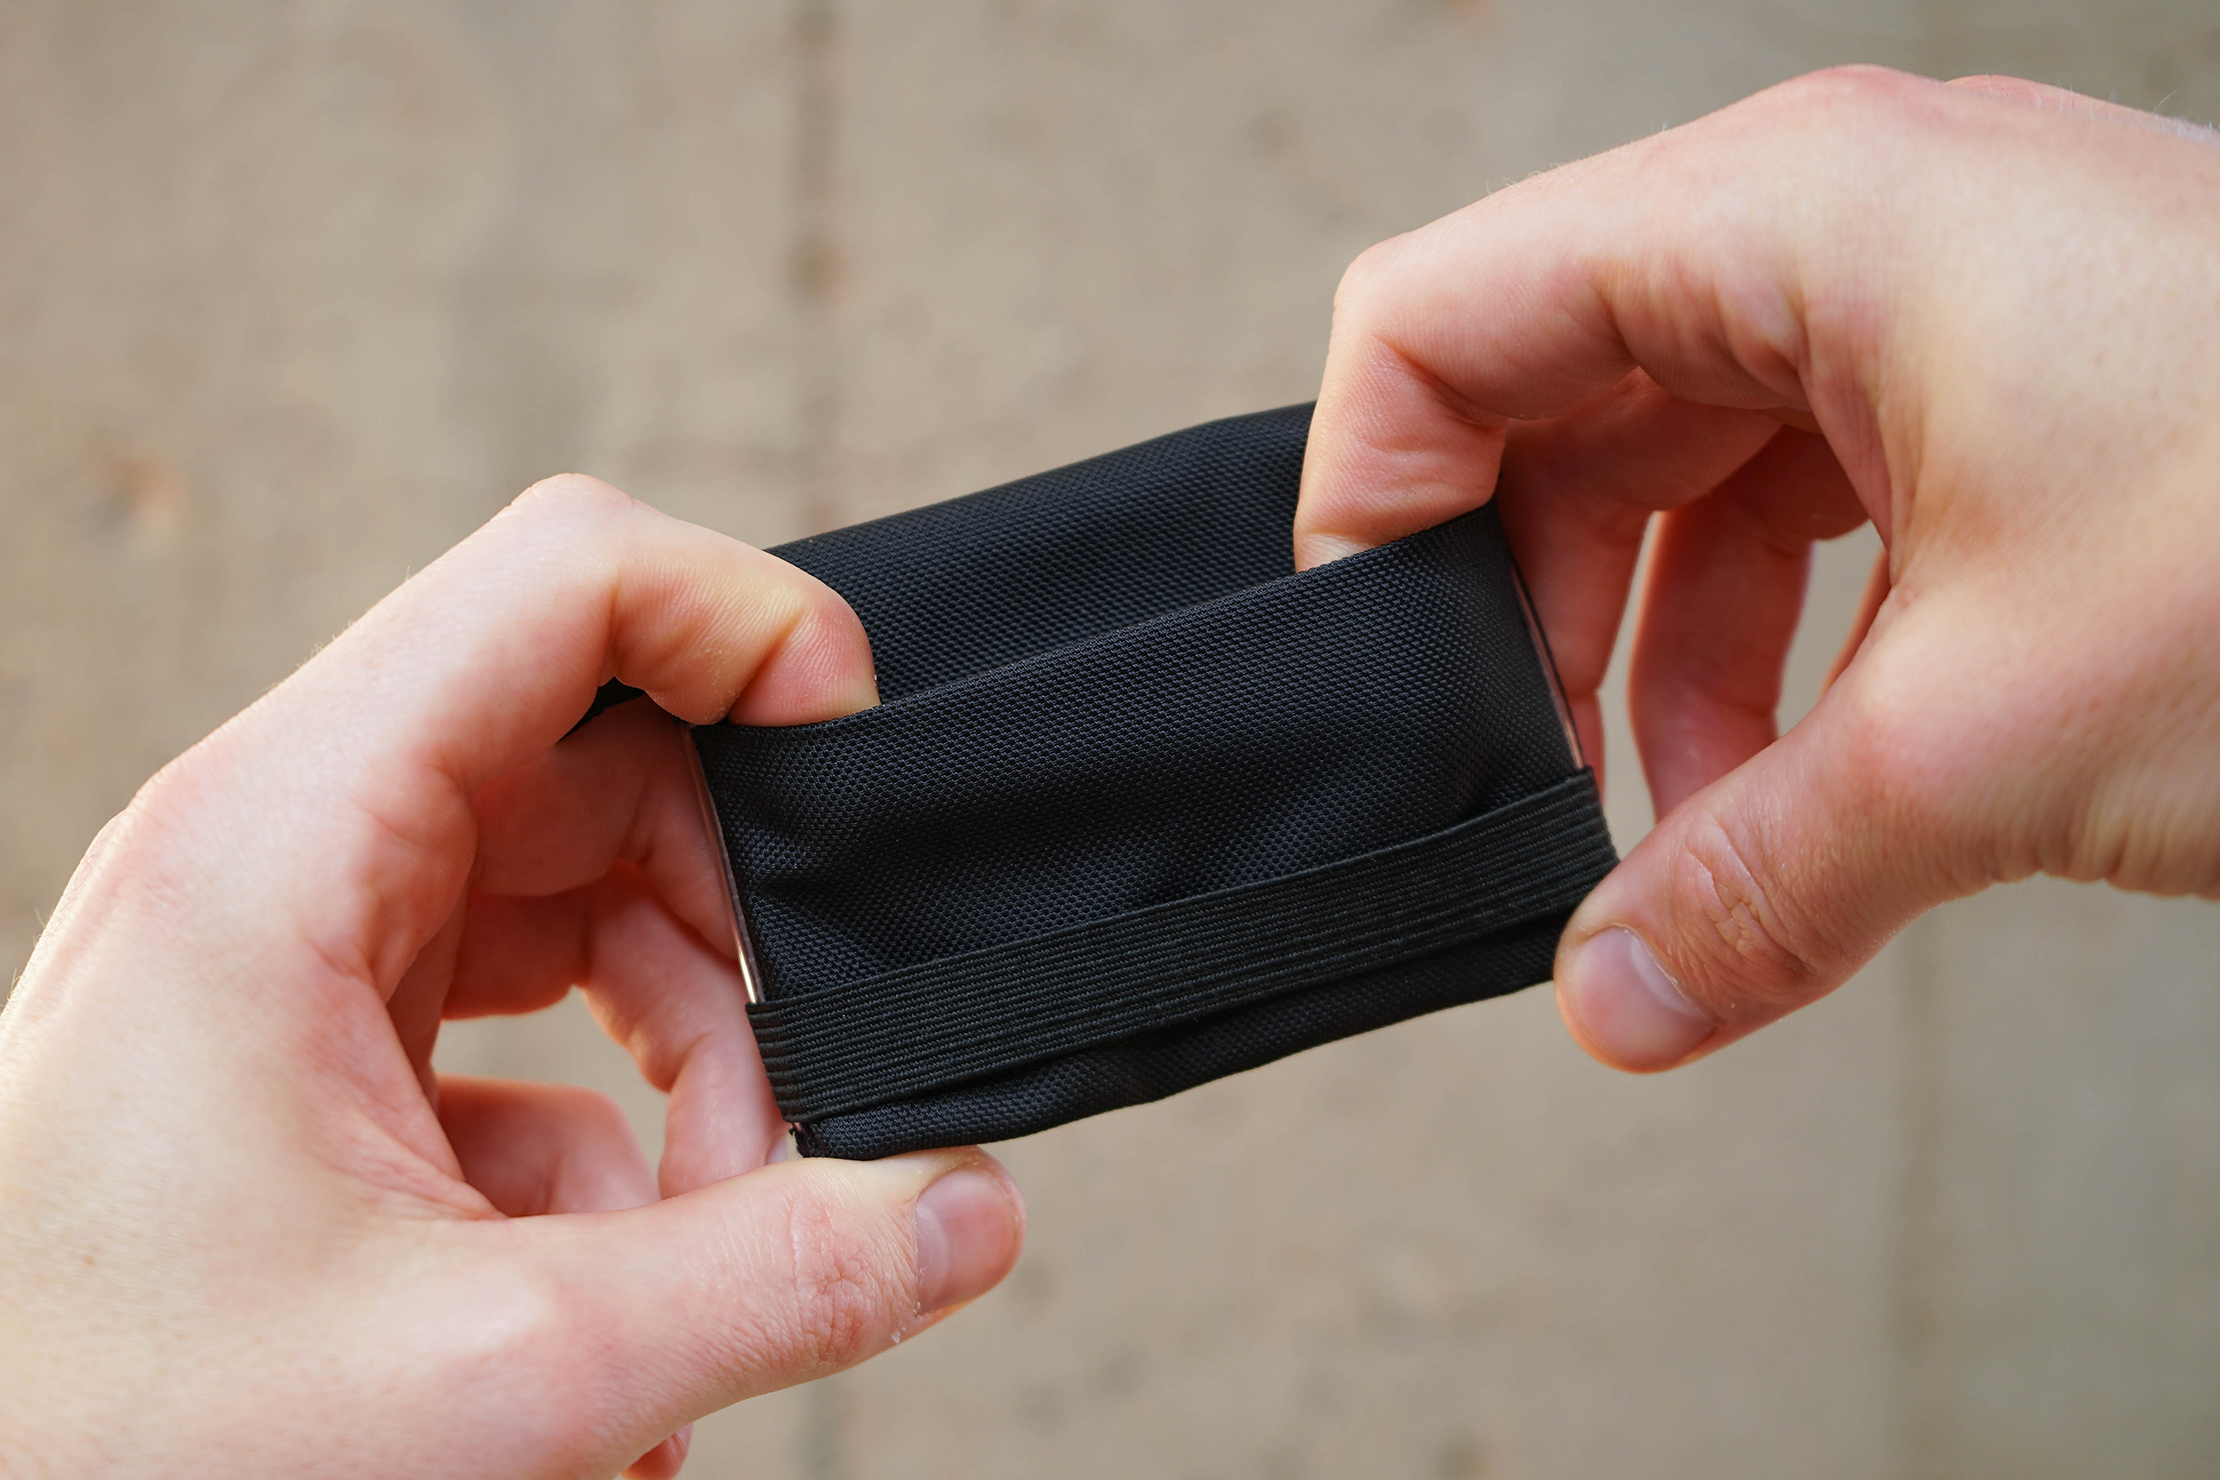 Tom Bihn Nik's Minimalist Wallet Pocket Stretch